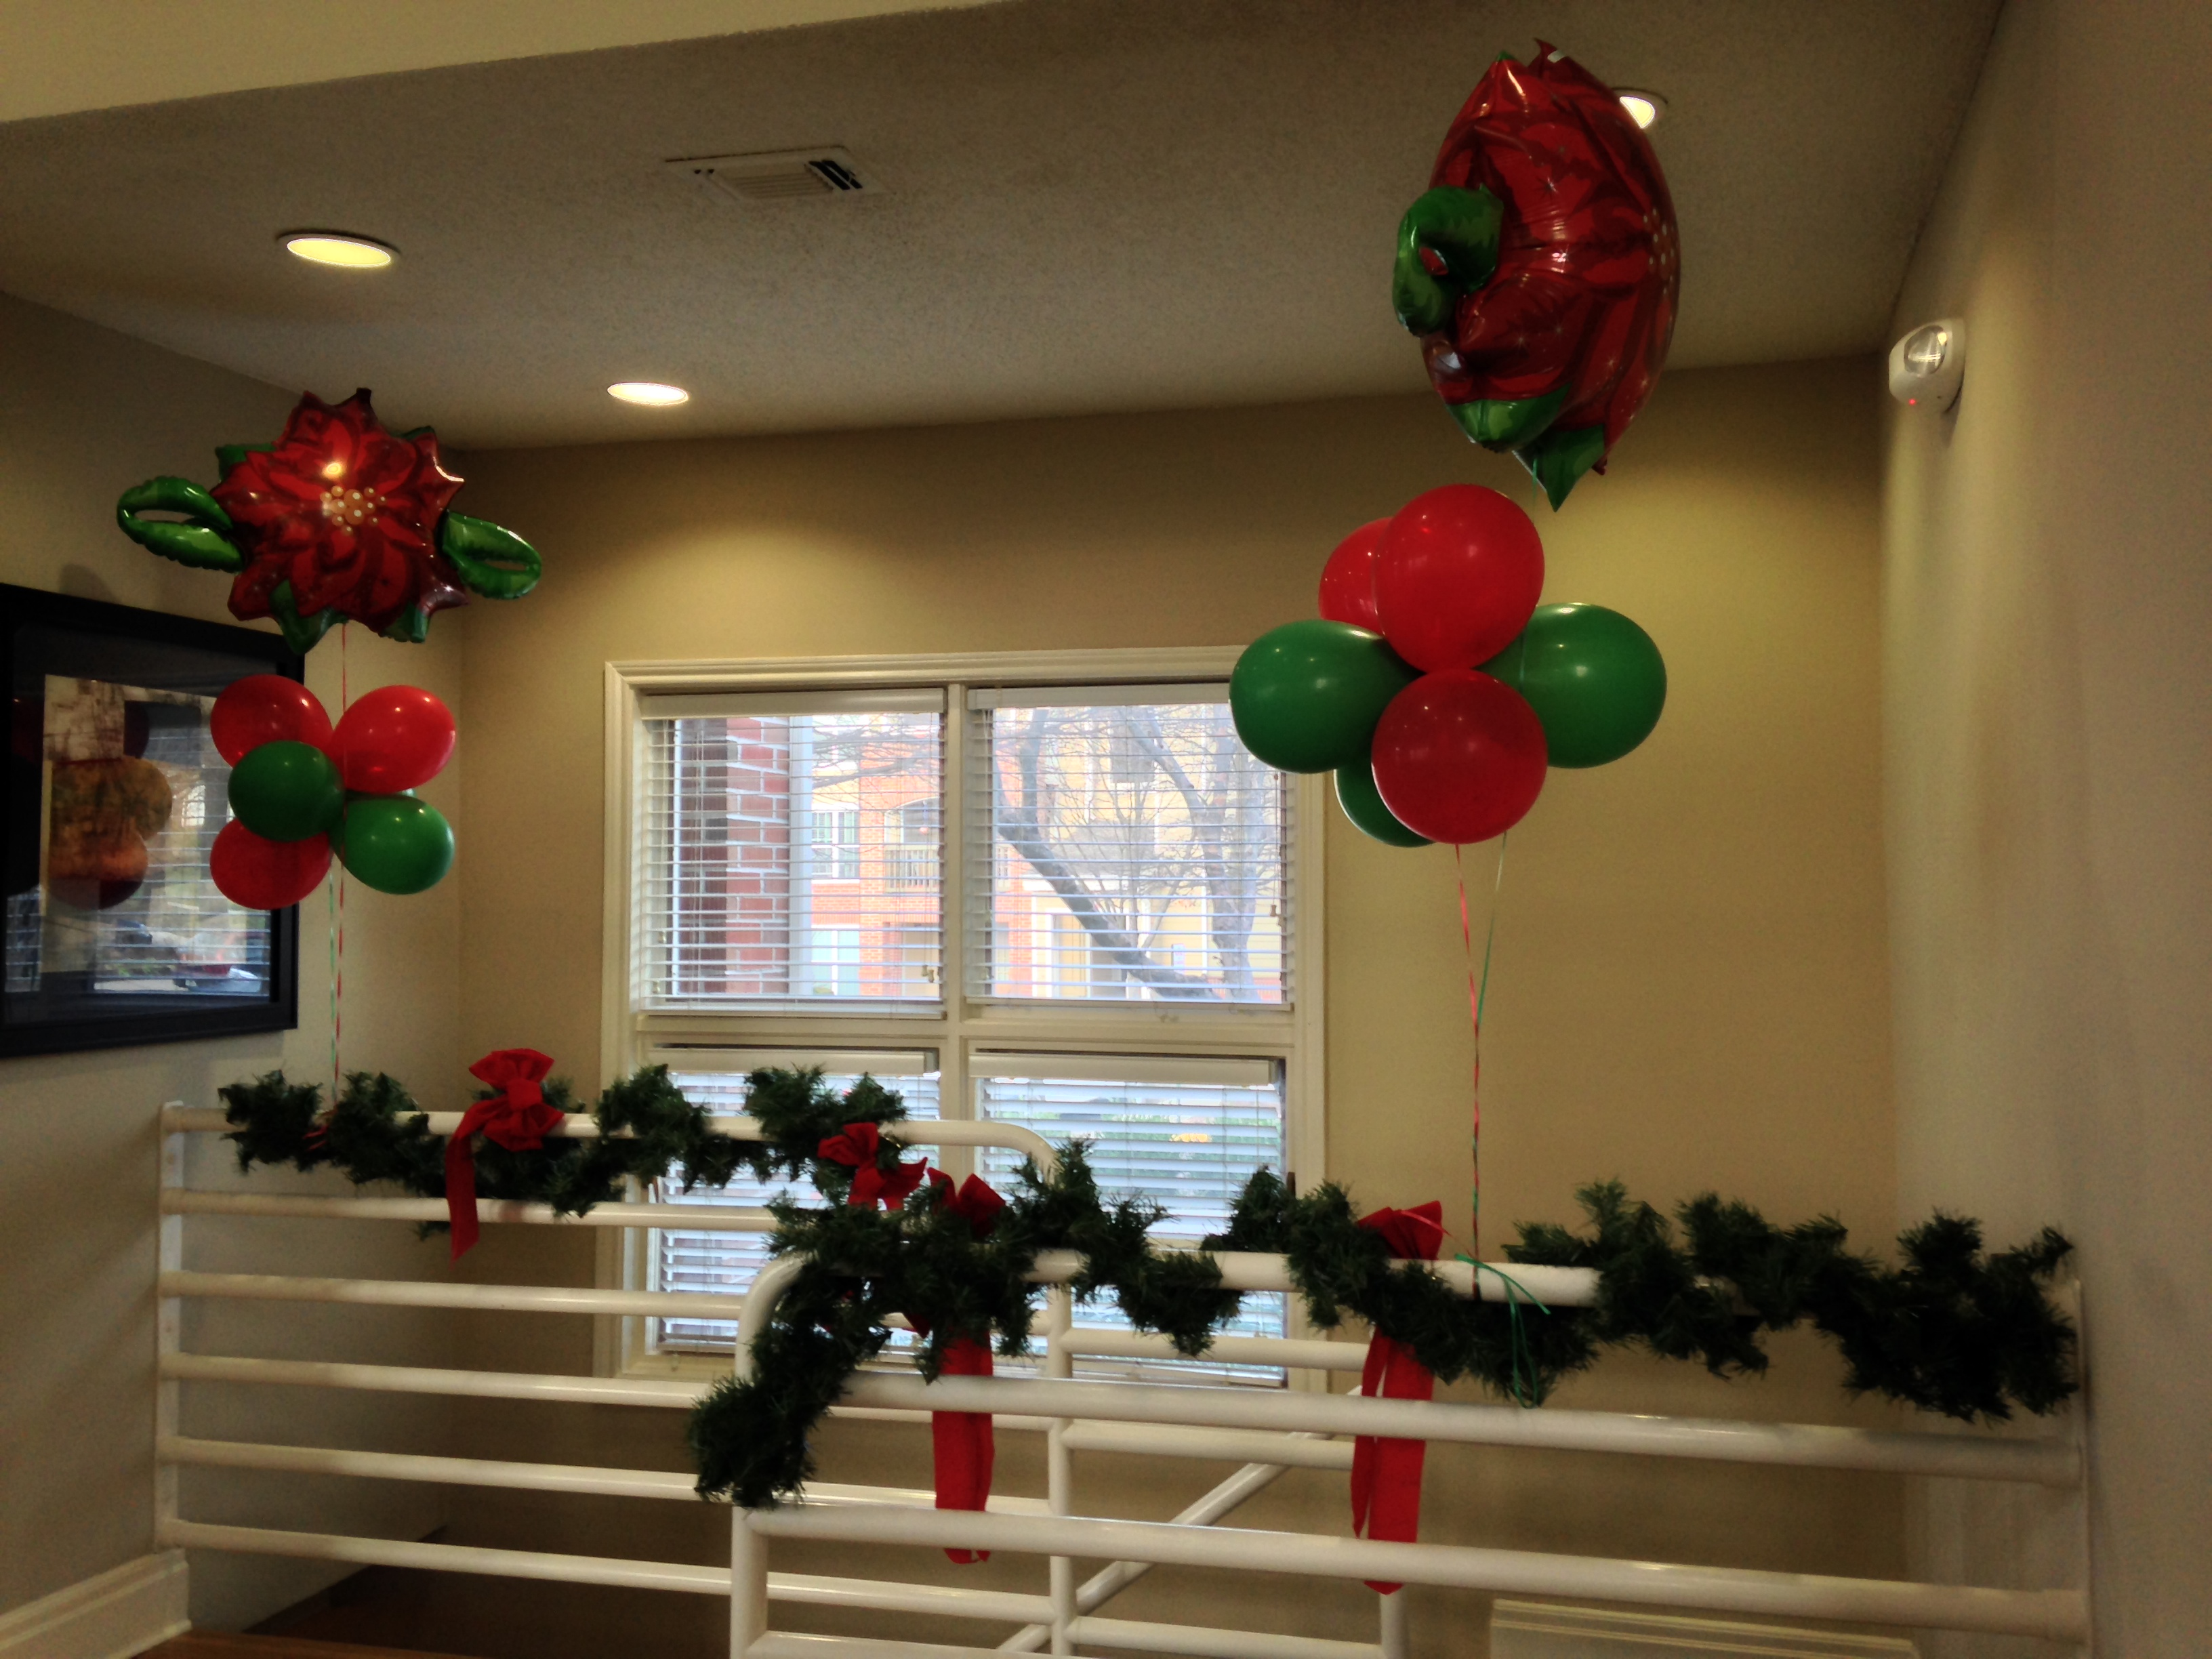 Red And Green Balloons Christmas Decorations On Railing